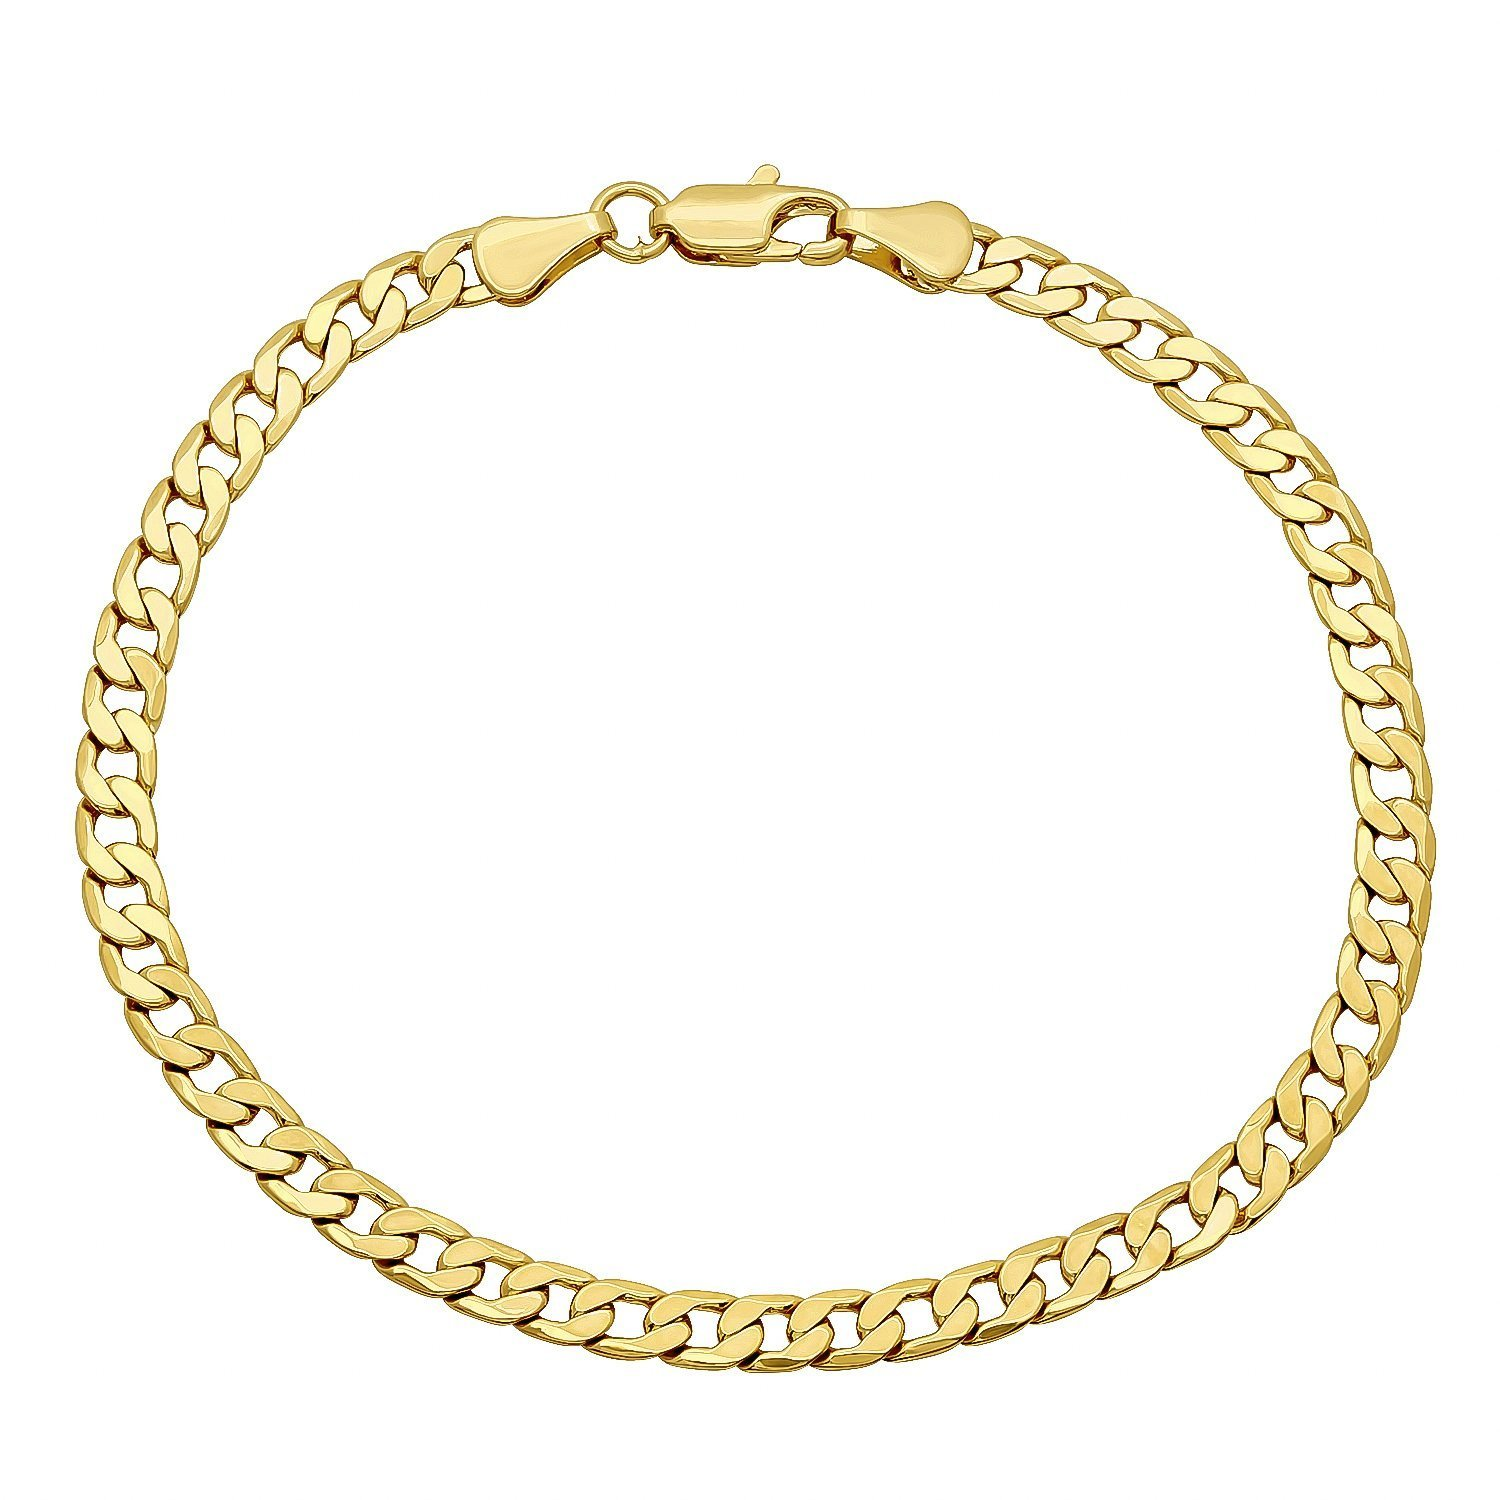 14K Yellow Gold 4MM Cuban Chain Bracelet - 8 Inches- Made in Italy